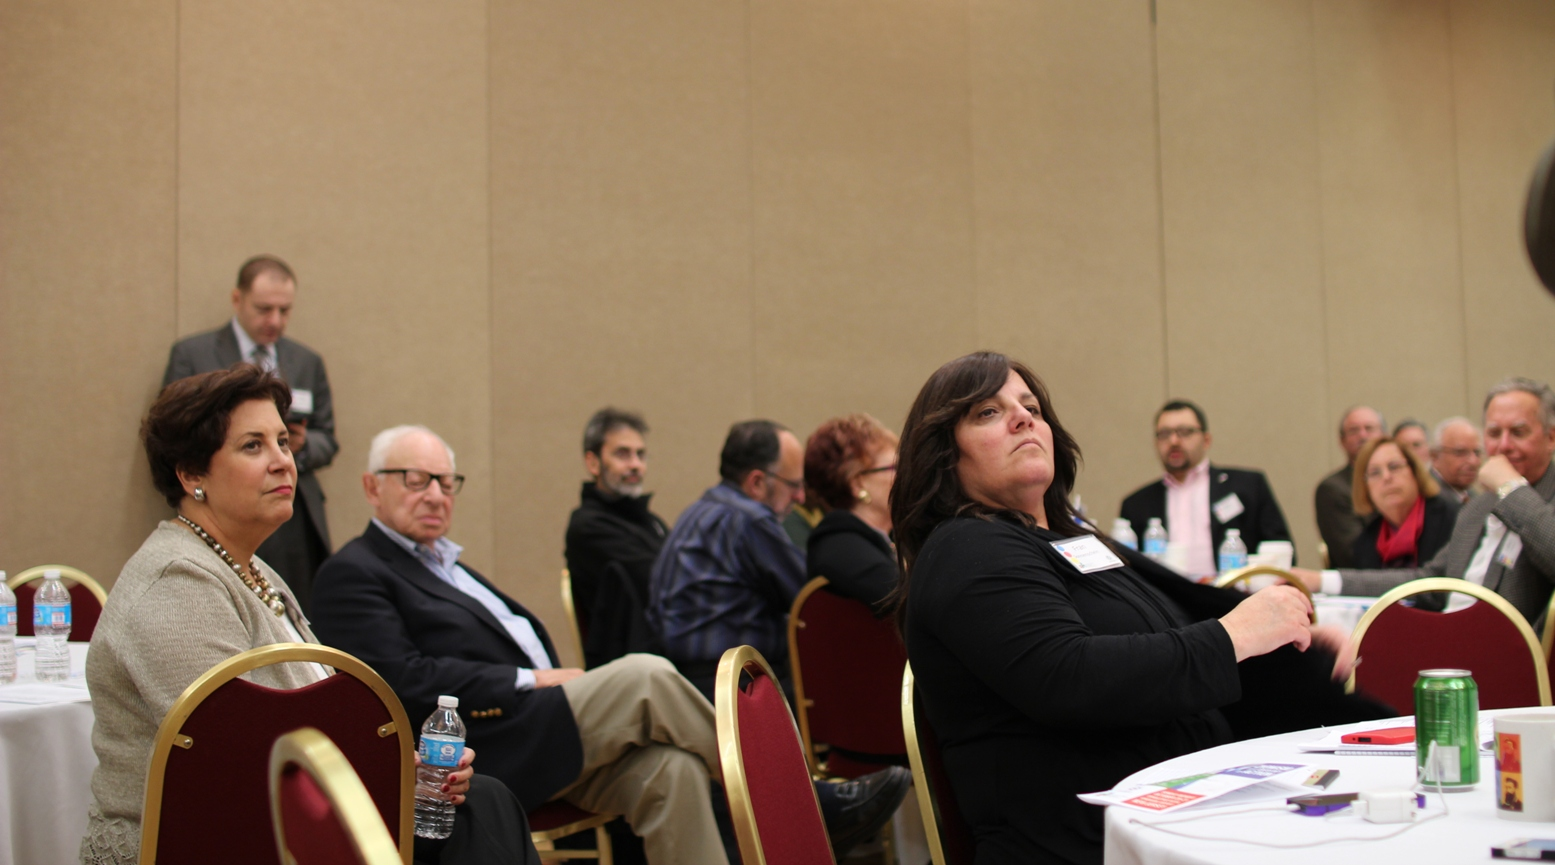 Attendees listen to Zionist thinkers